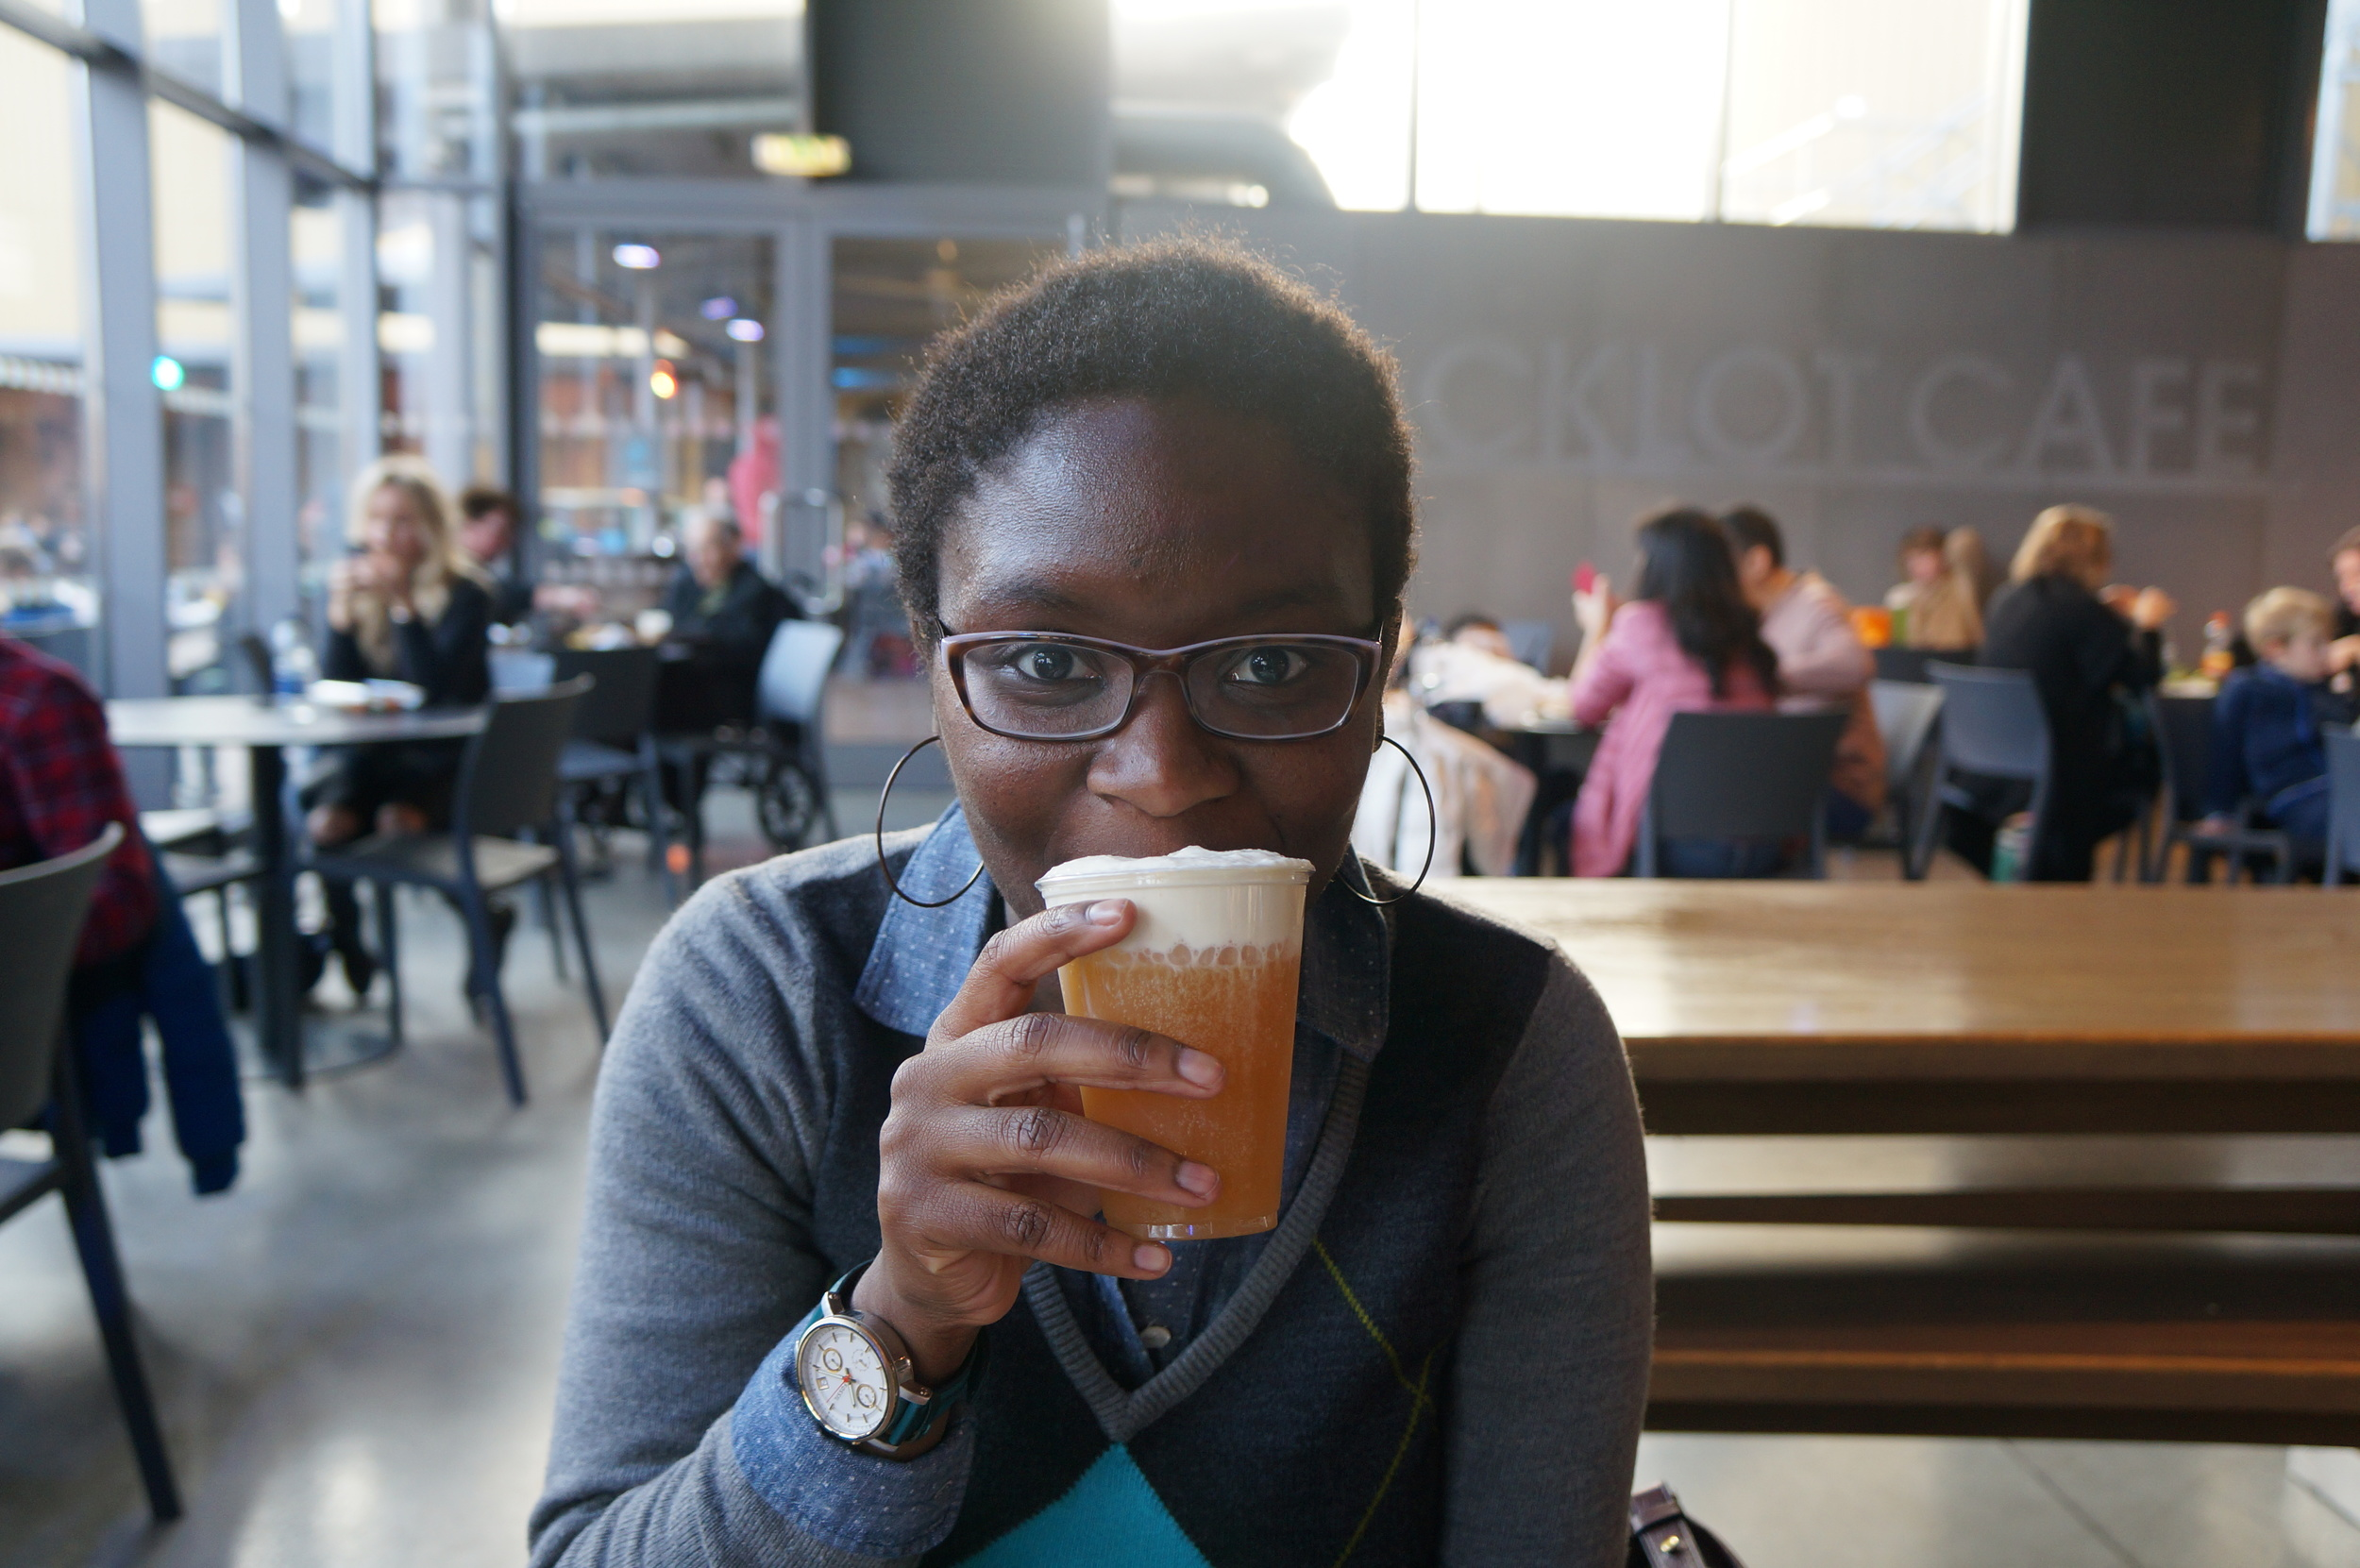 Trying some Butter Beer at the Harry Potter Studio Tour